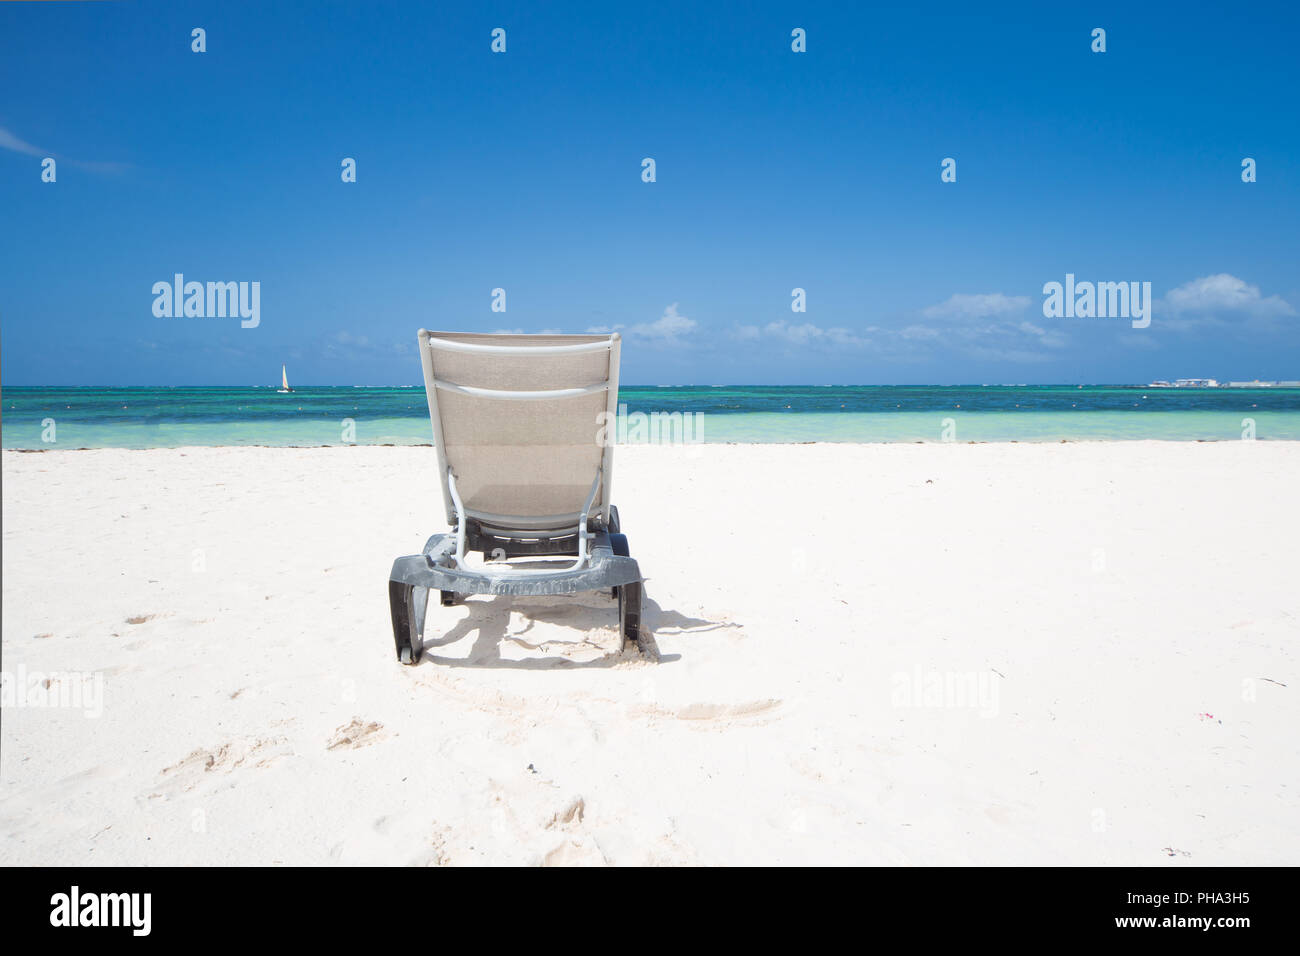 Lonely sunbed on Caribbean Beach - Stock Image